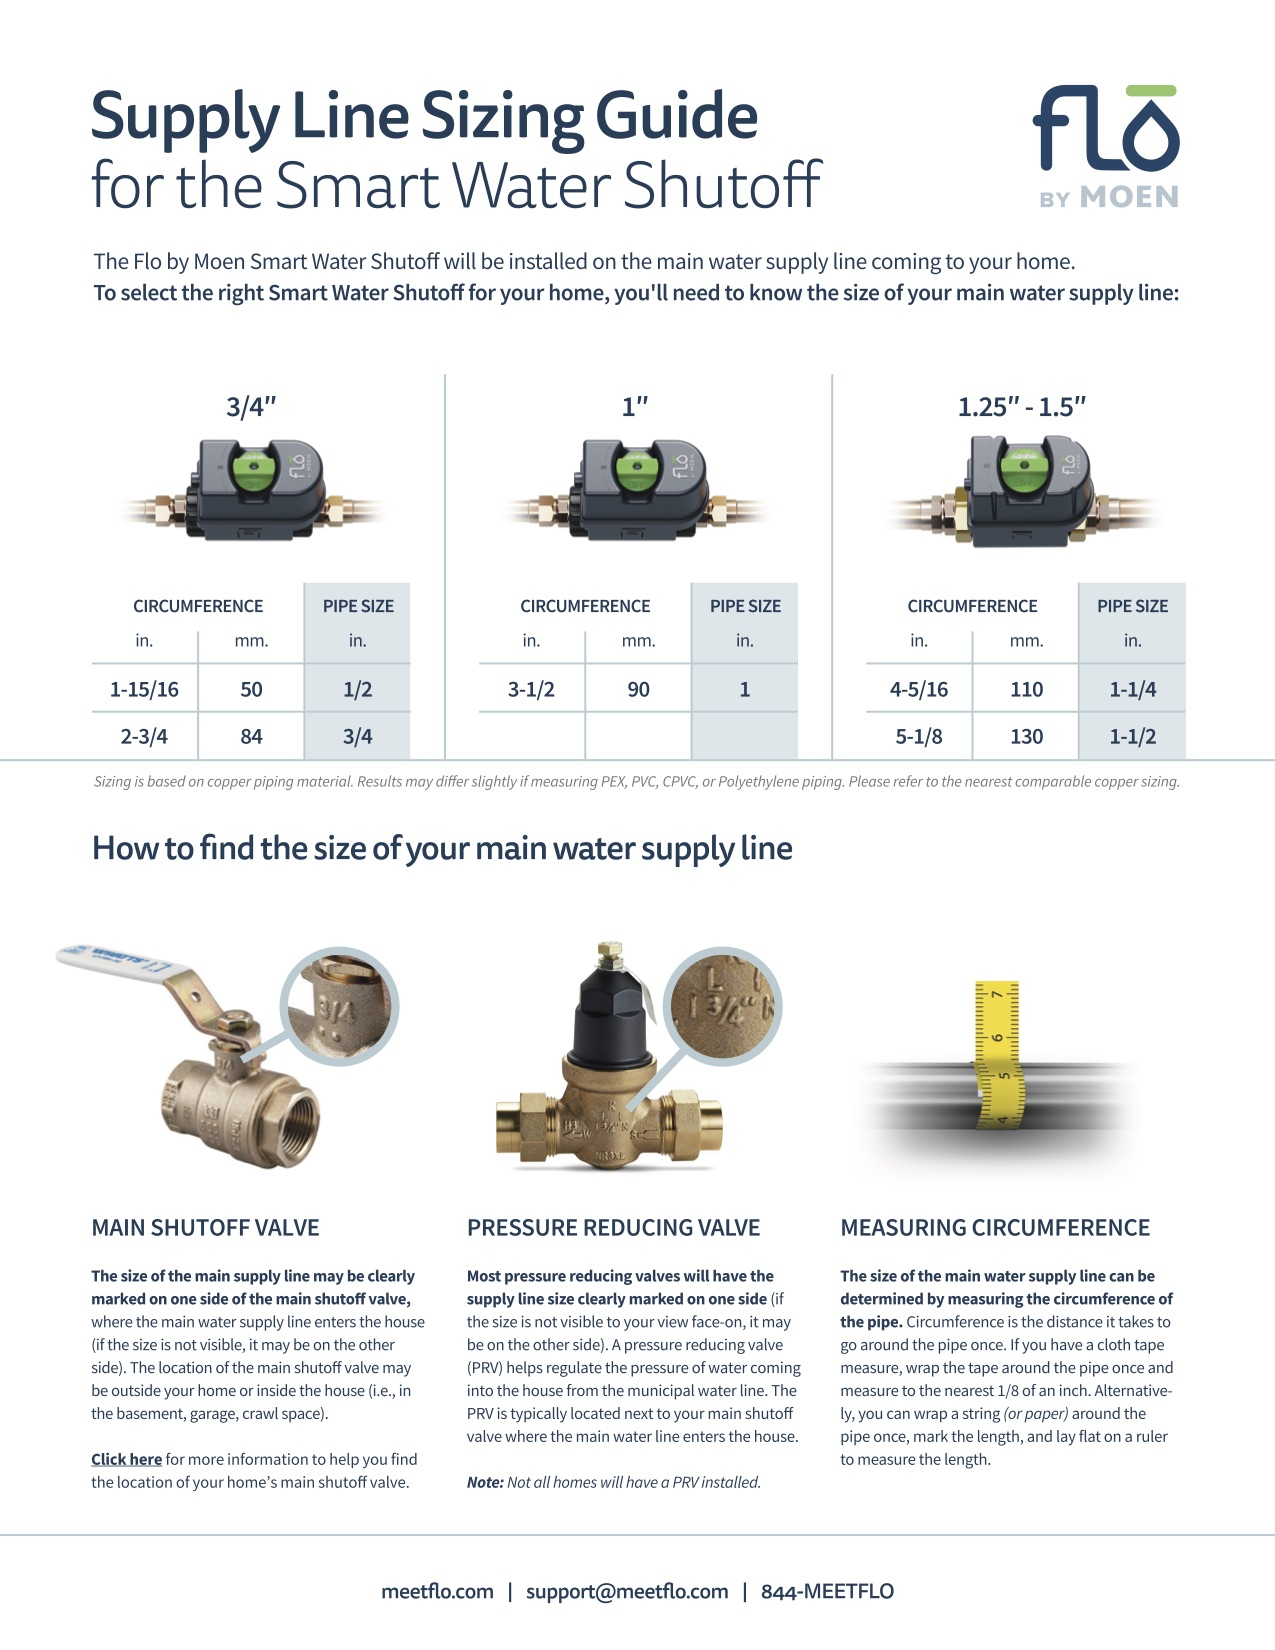 Supply Line Sizing Guide for FLO by Moen Valves